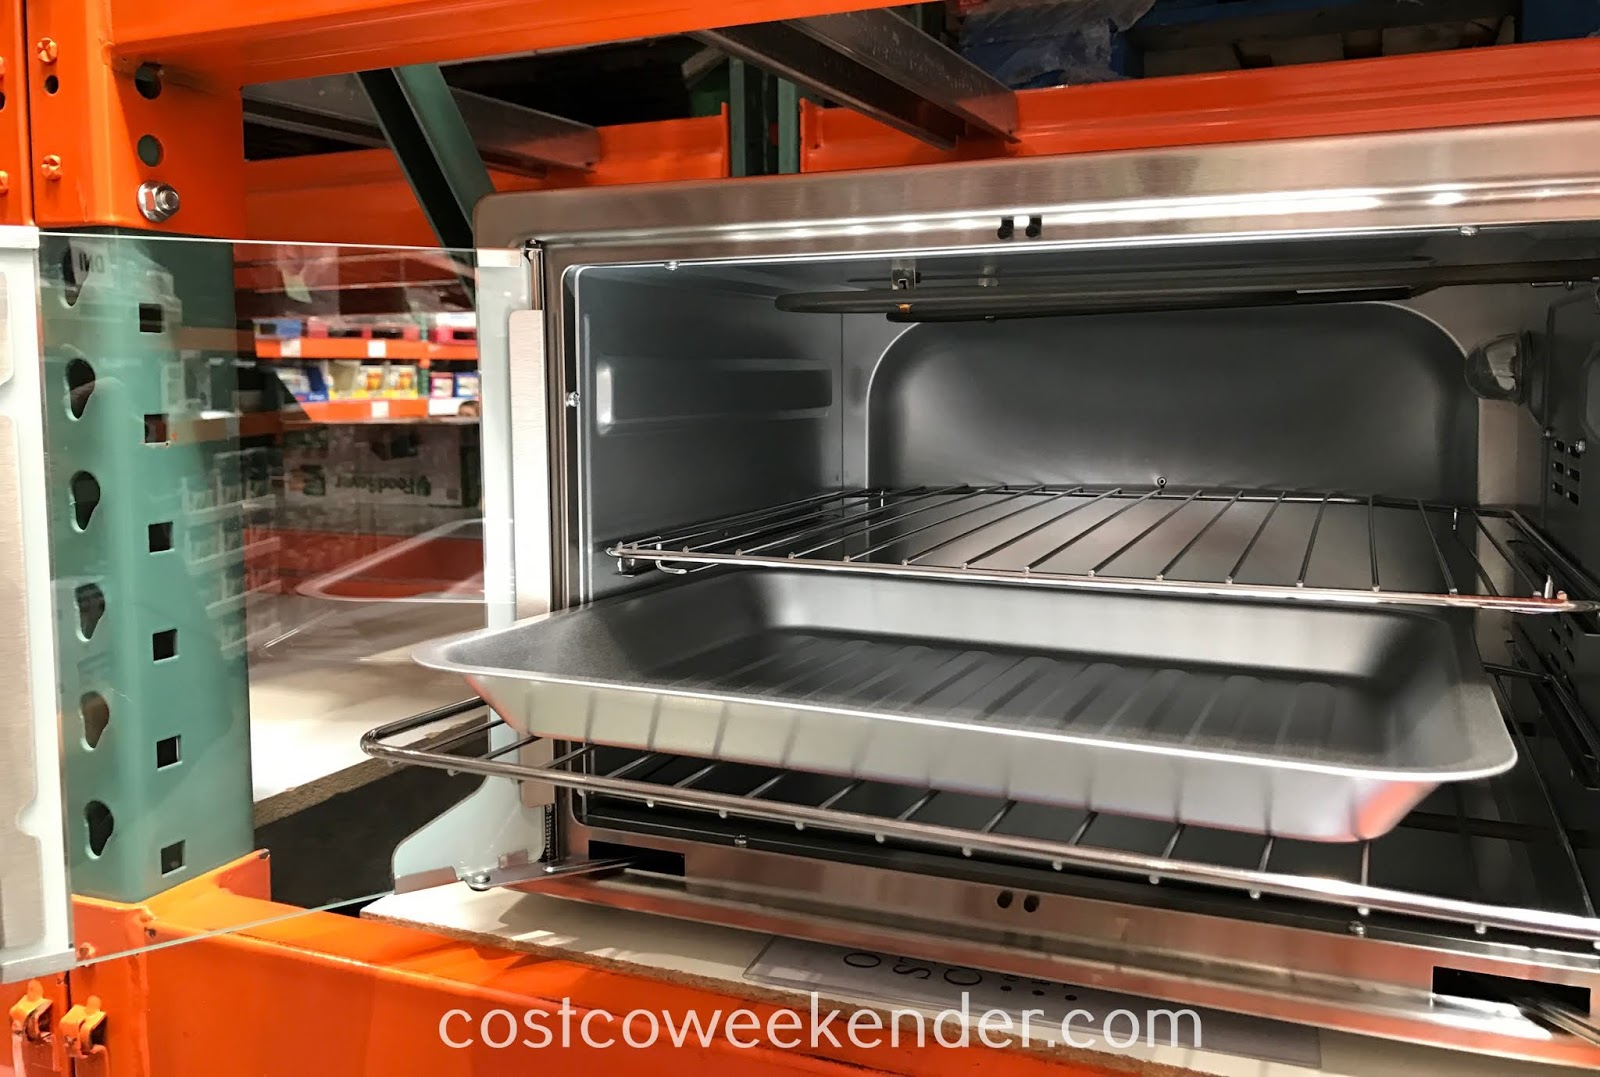 Costco 1234400 - Modernize your kitchen with the Oster Digital French Door Oven